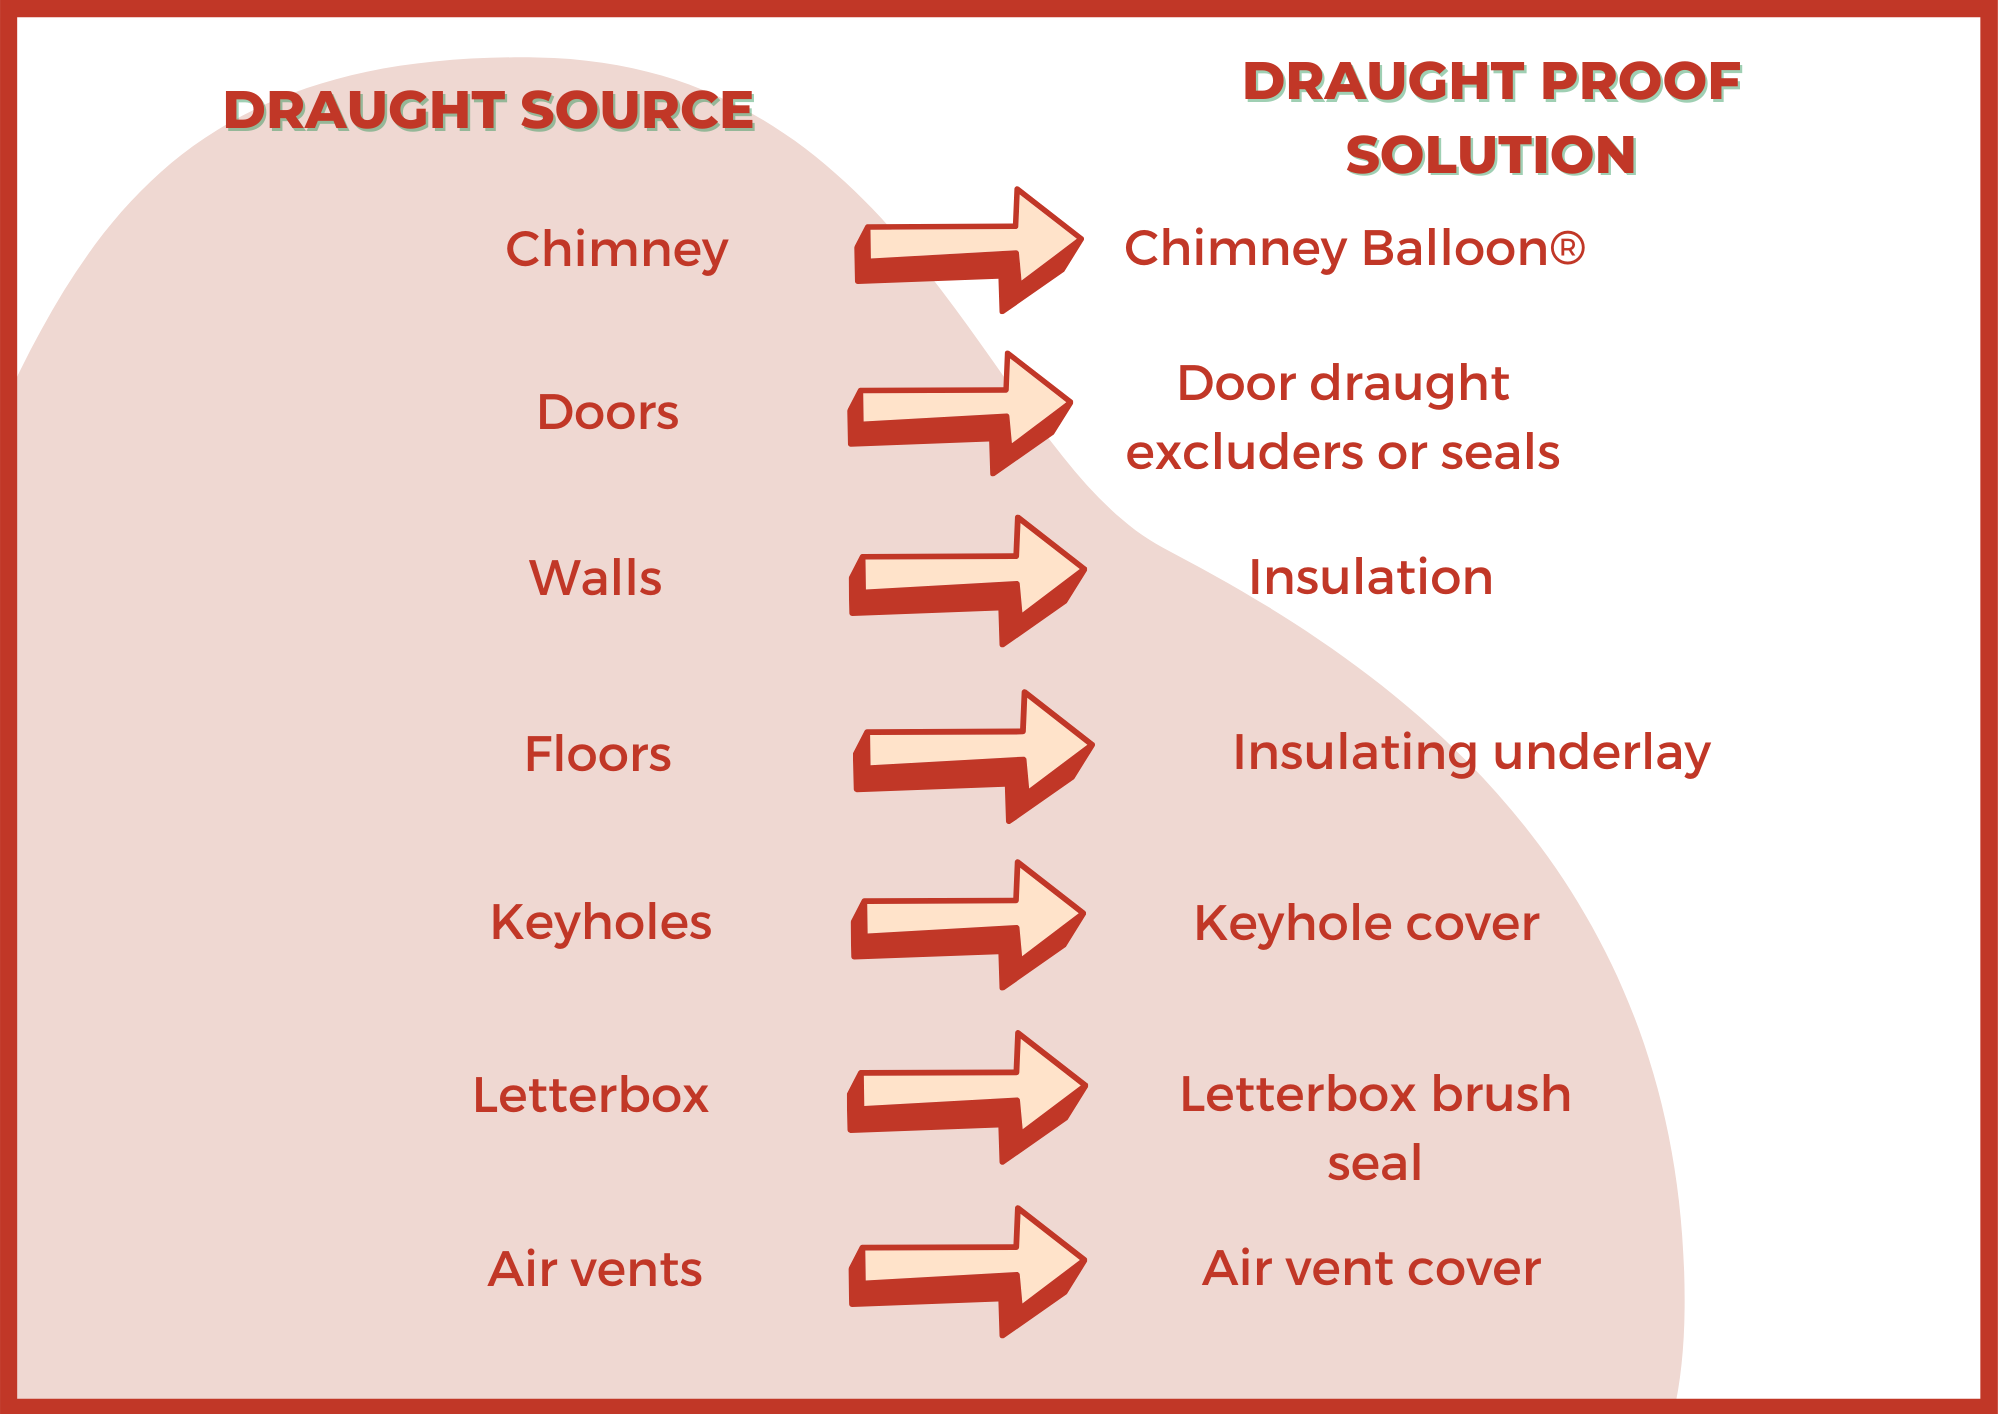 Draught proofing methods